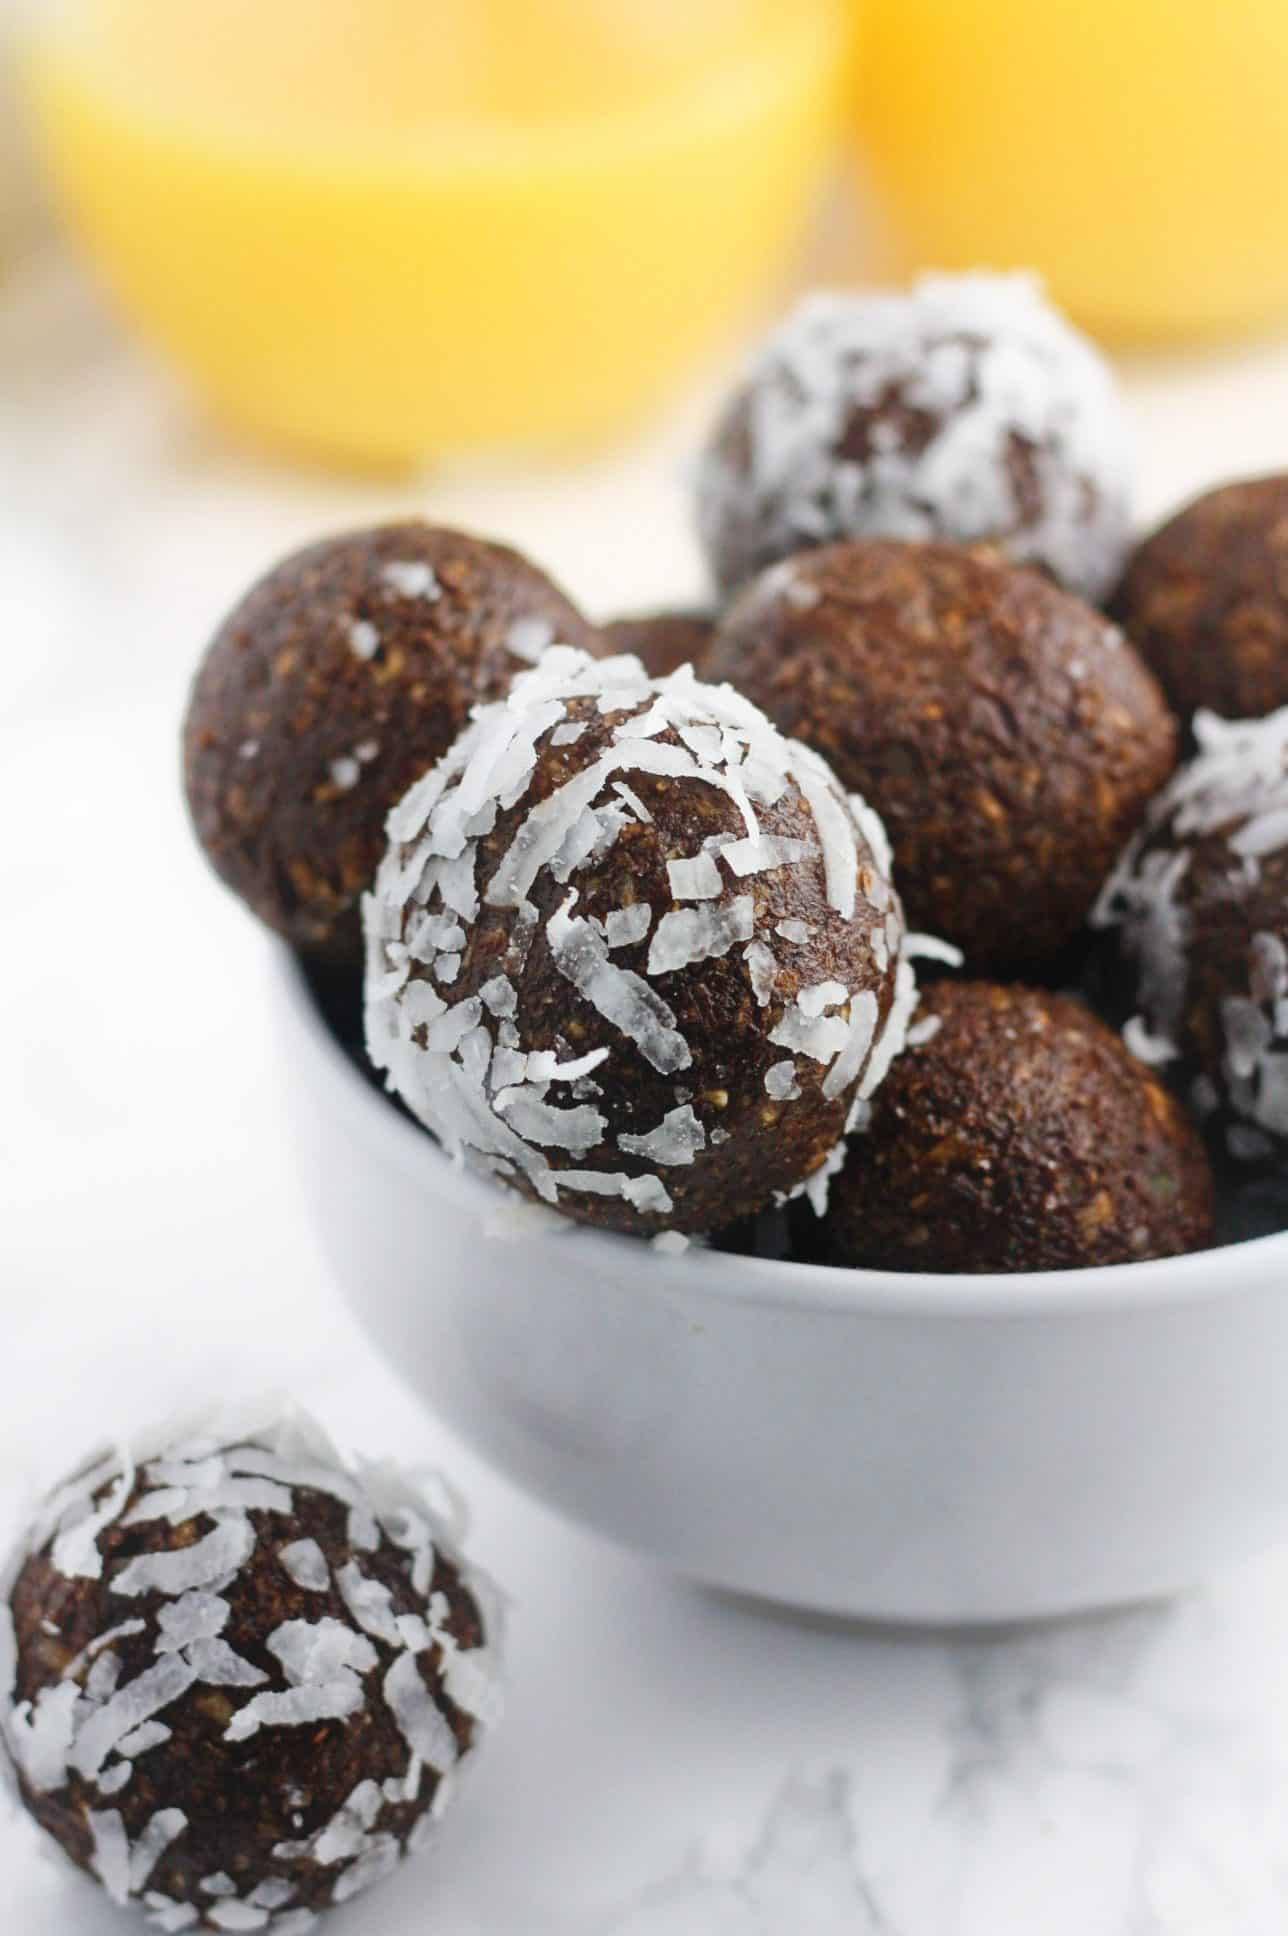 Super easy, no bake energy bites that do not contain any refined sugars. Made with avocado, chia seeds, hemp seeds and cacao powder, these are the ultimate superfood bites! - itscheatdayeveryday